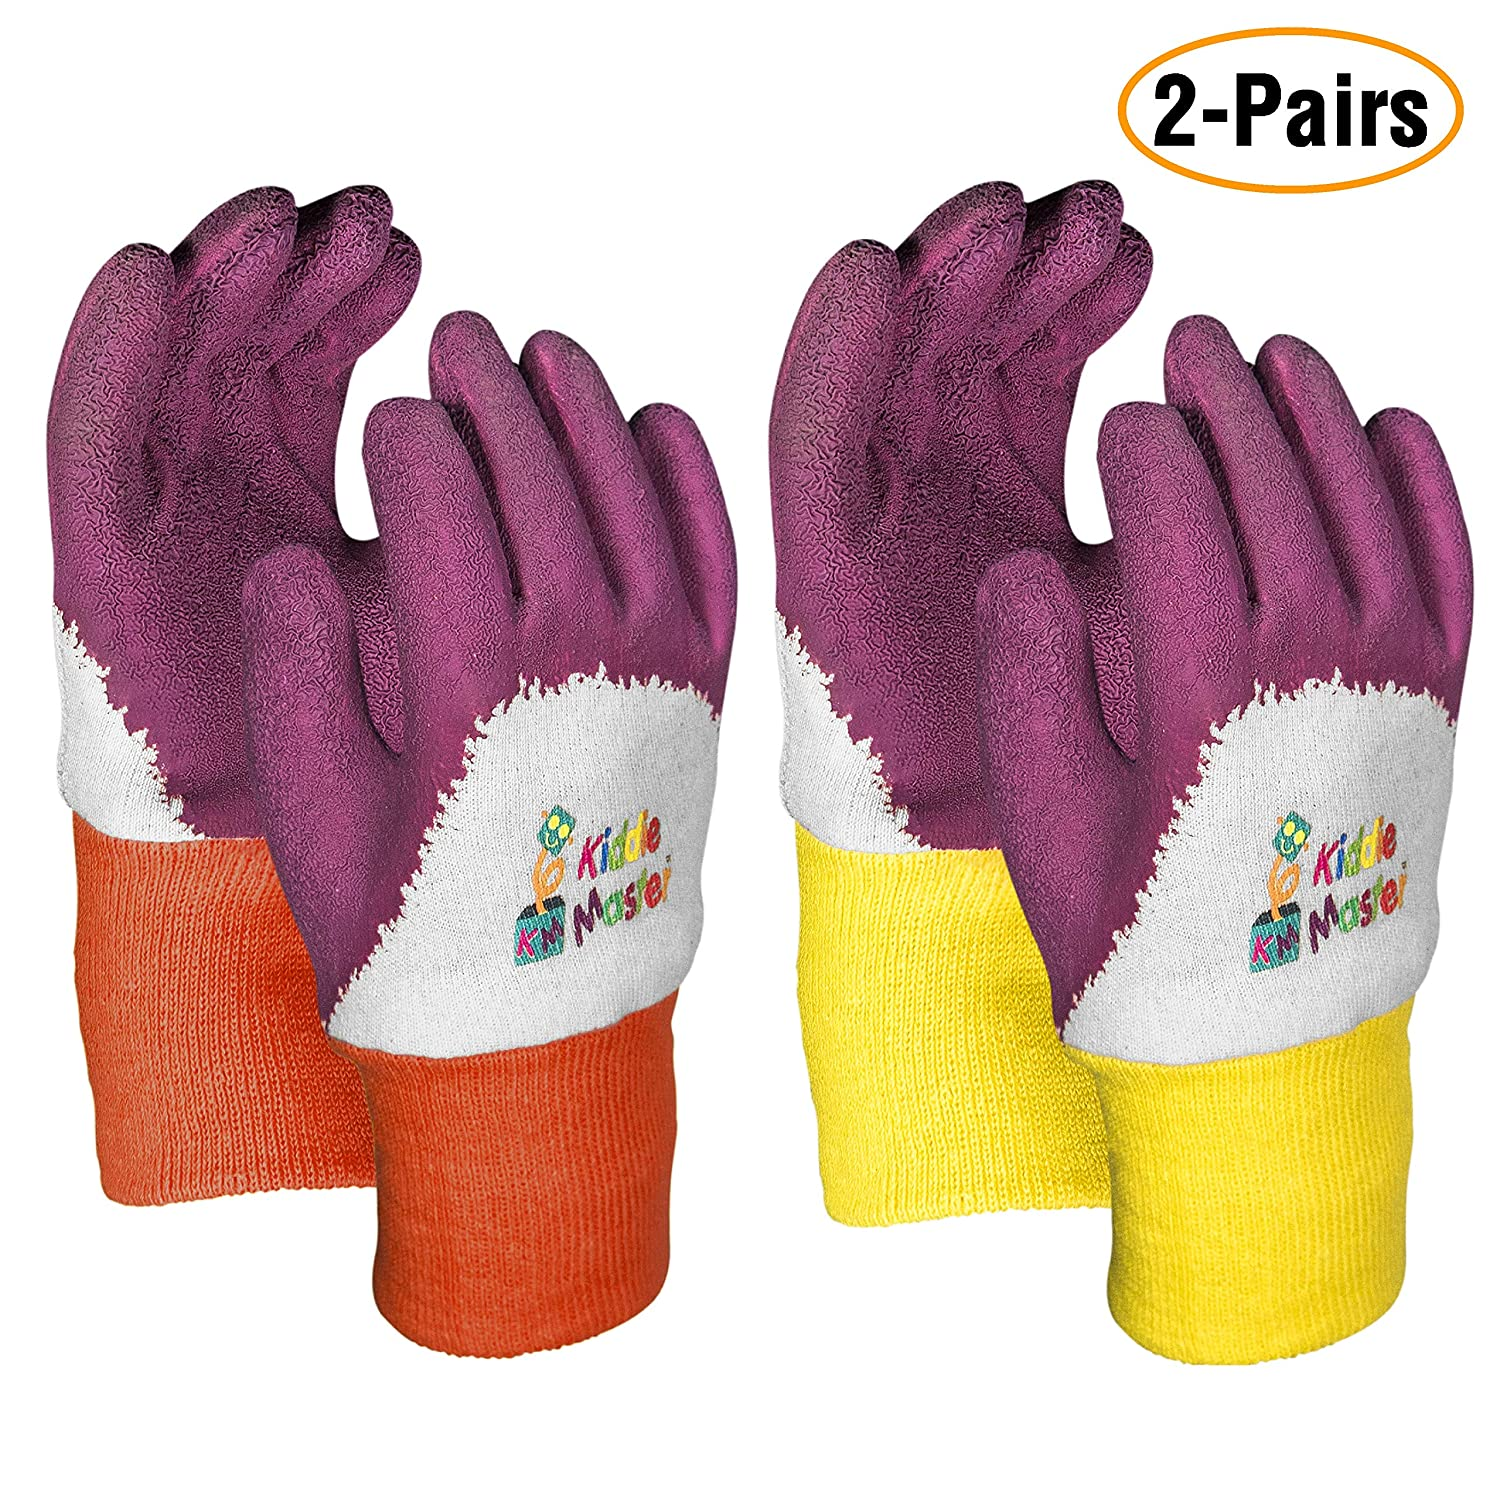 Kids Gardening Gloves by KIDDIE MASTER: 2-Pairs Children's Gardening Gloves Set for Home/School Gardening| Breathable Cotton Gripping Gloves for Yard/Lawn Work| Top Kids Learning tool Gift (2-6 Years)